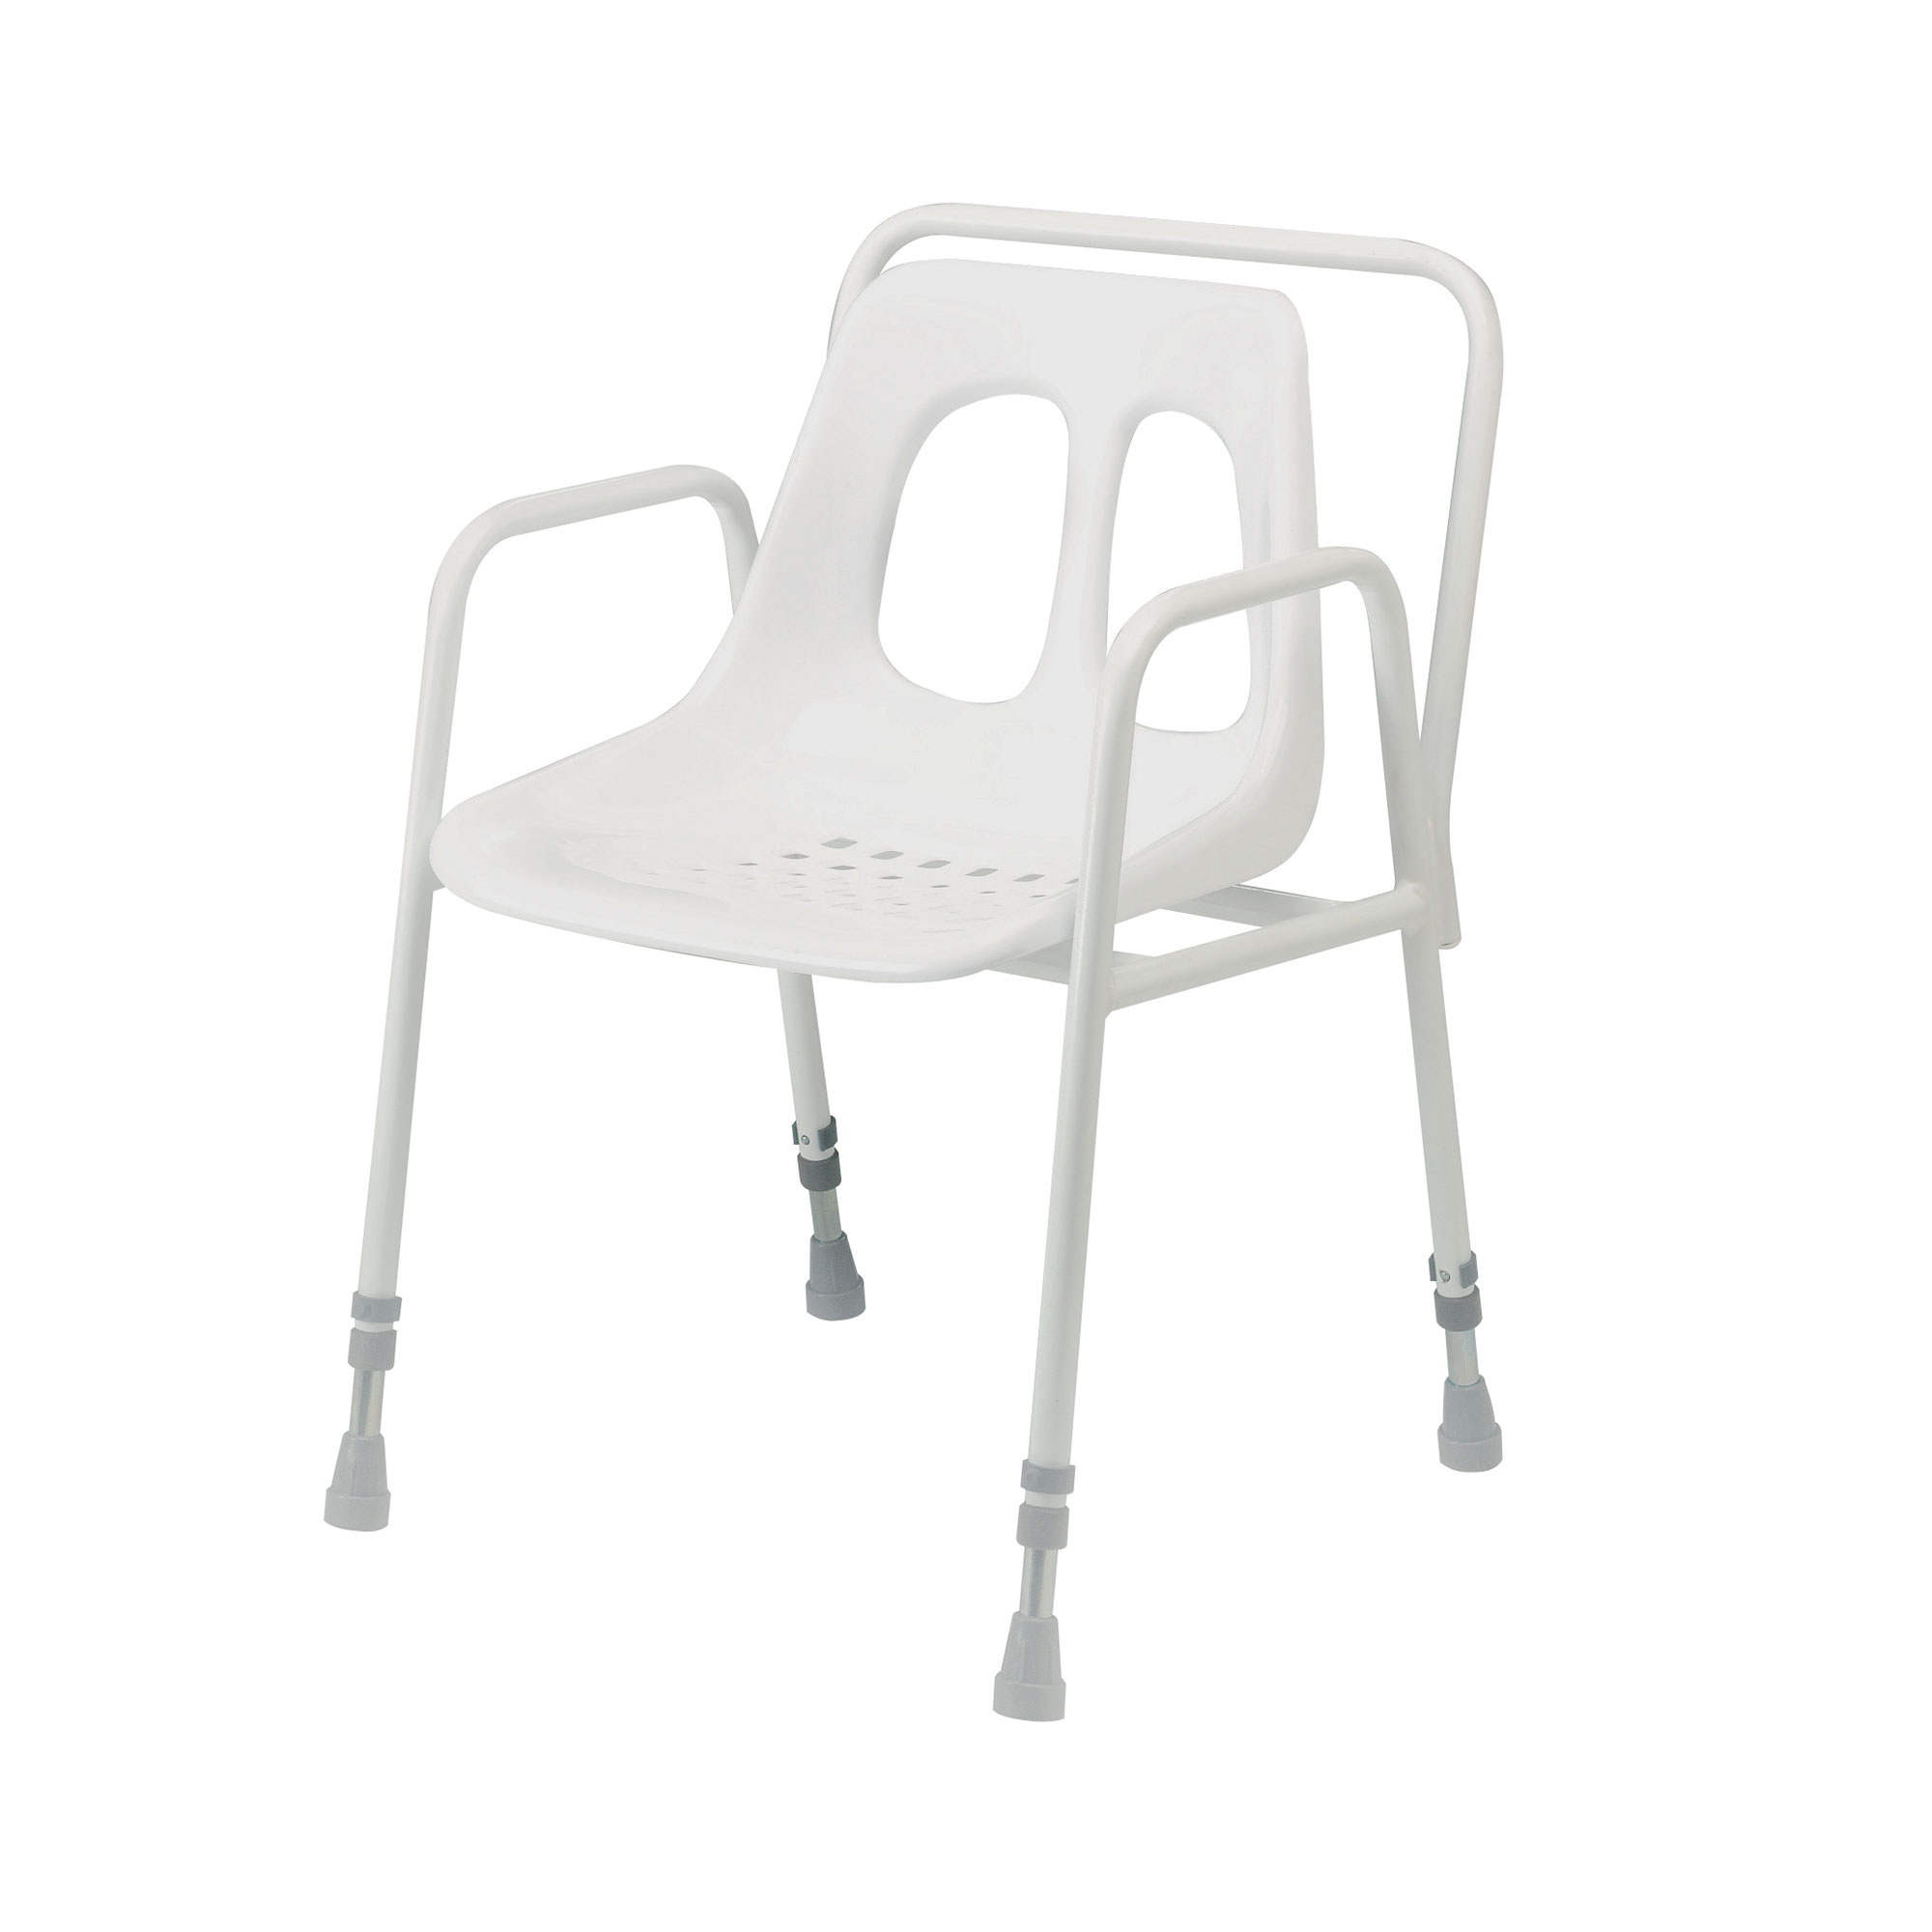 4557 : Telford Adjustable Shower Chair - Roma Medical